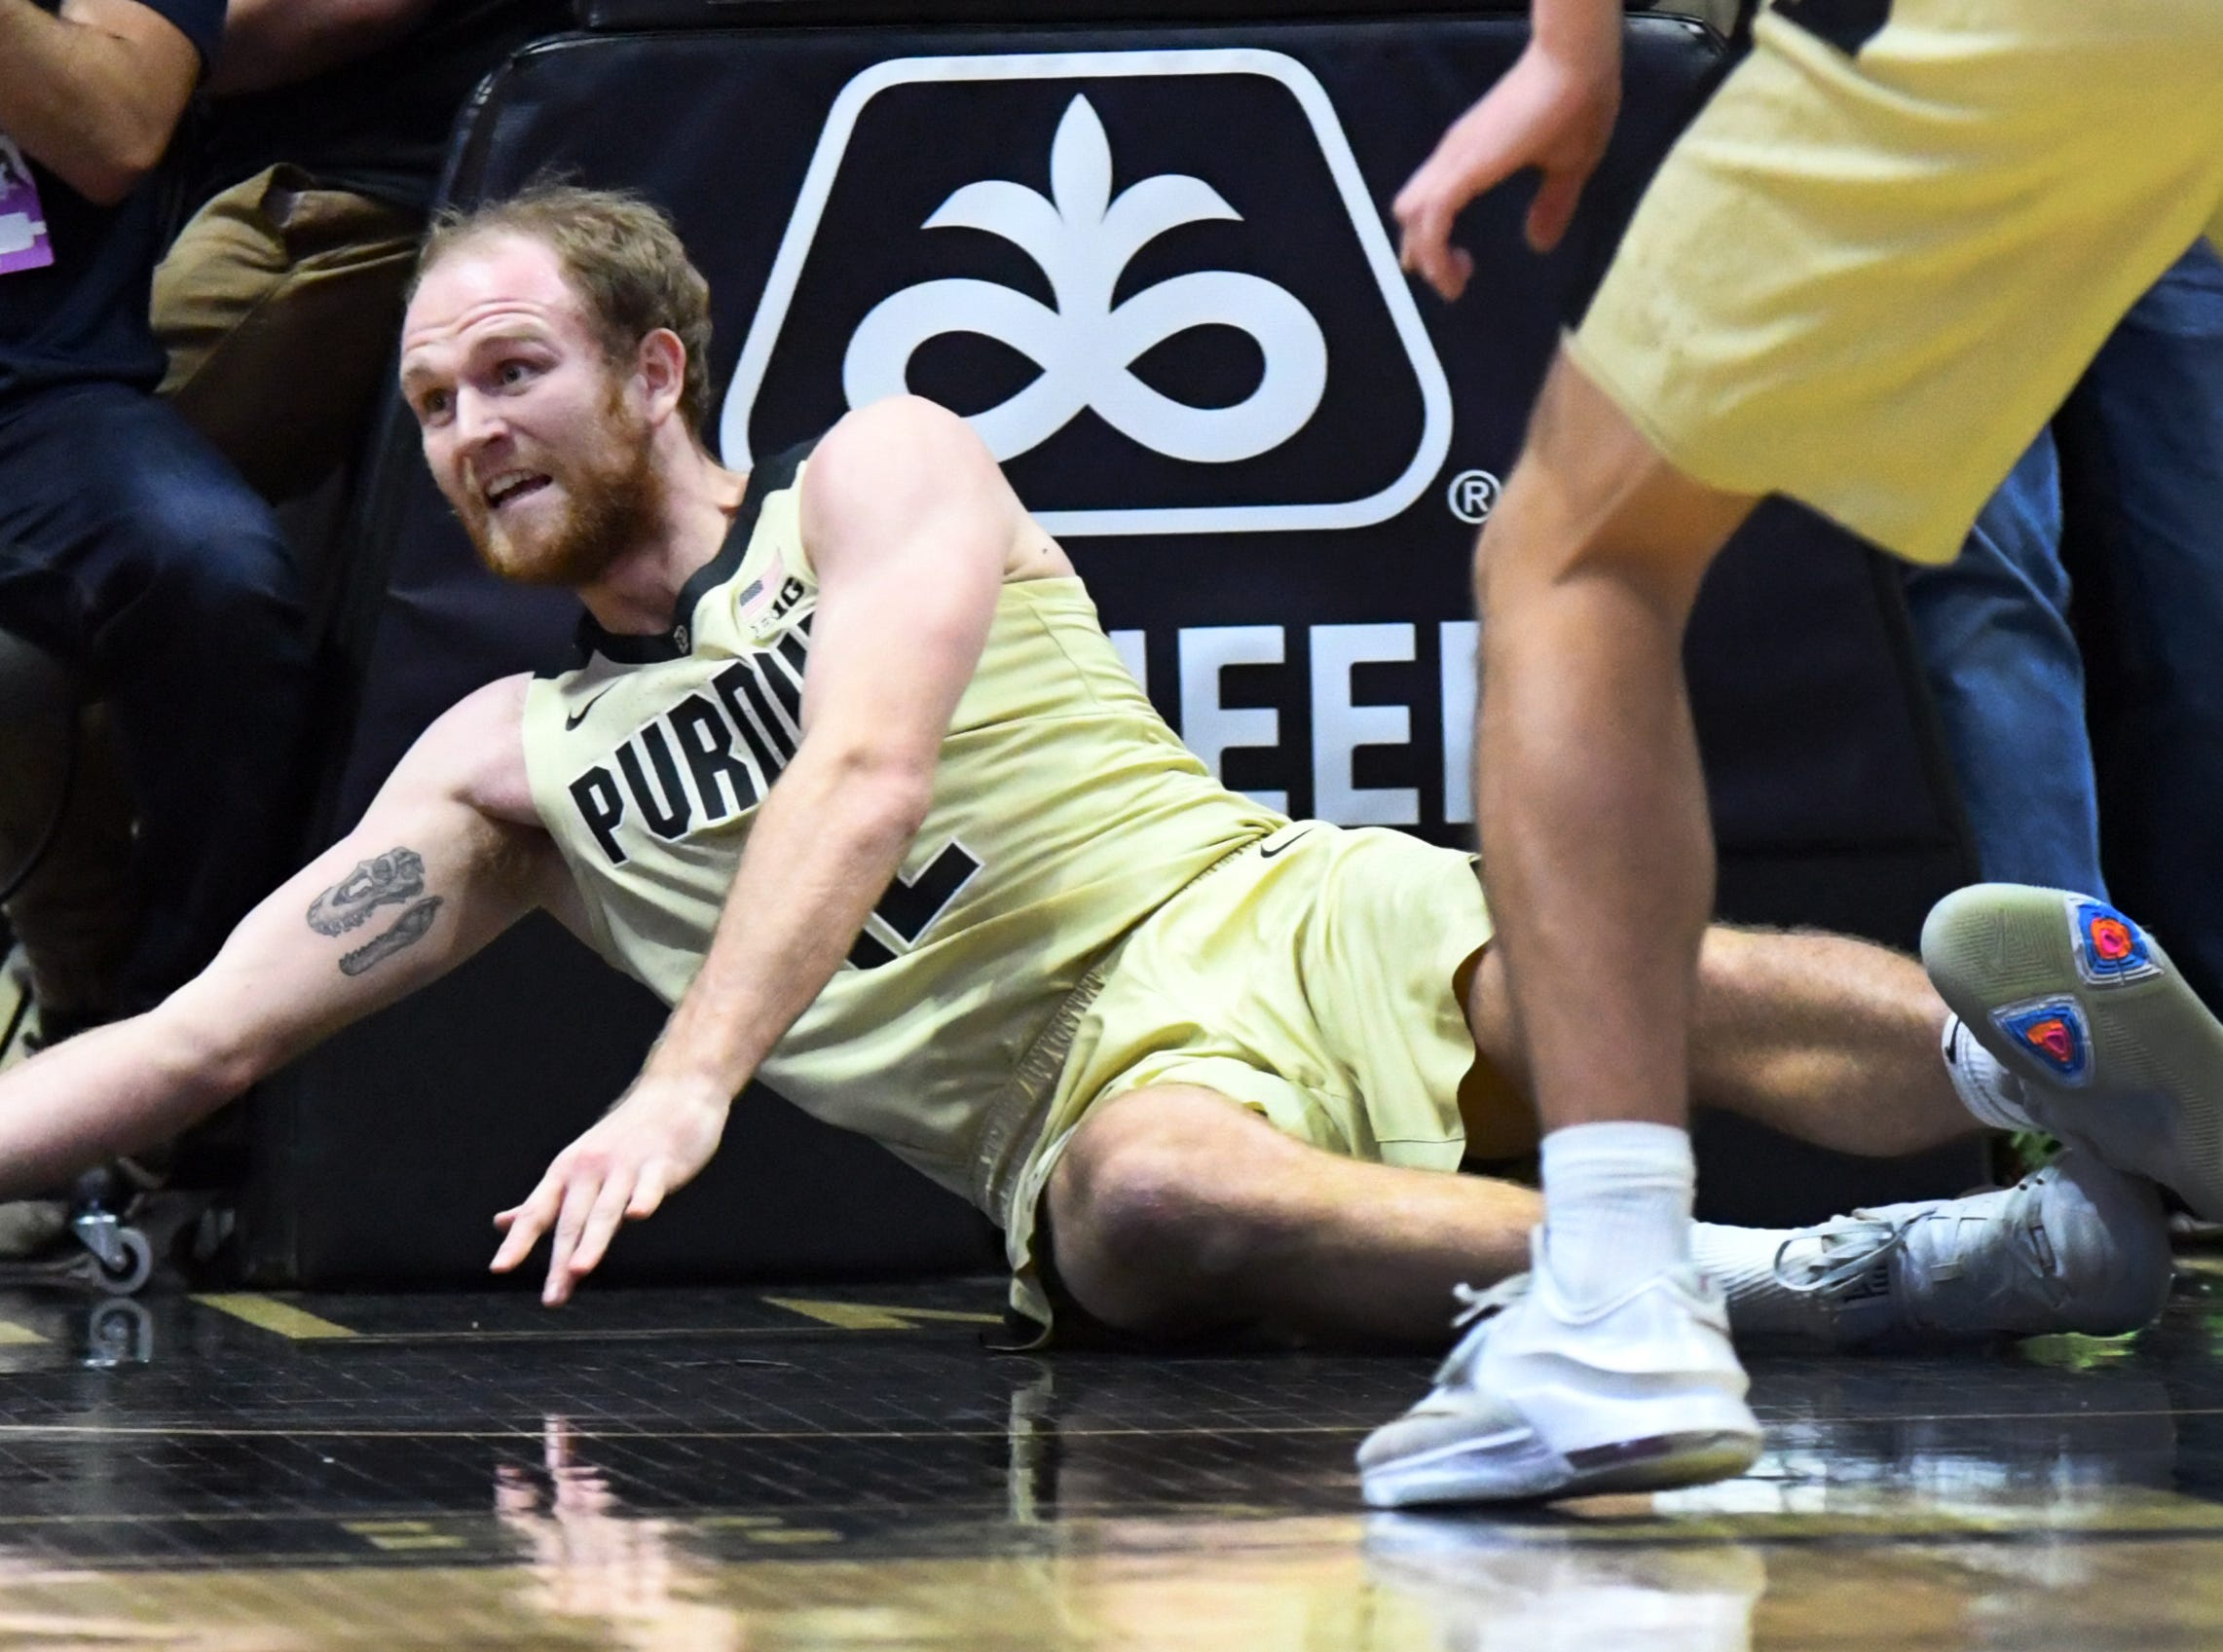 Purdue center Evan Boudreaux dives for a loose ball.